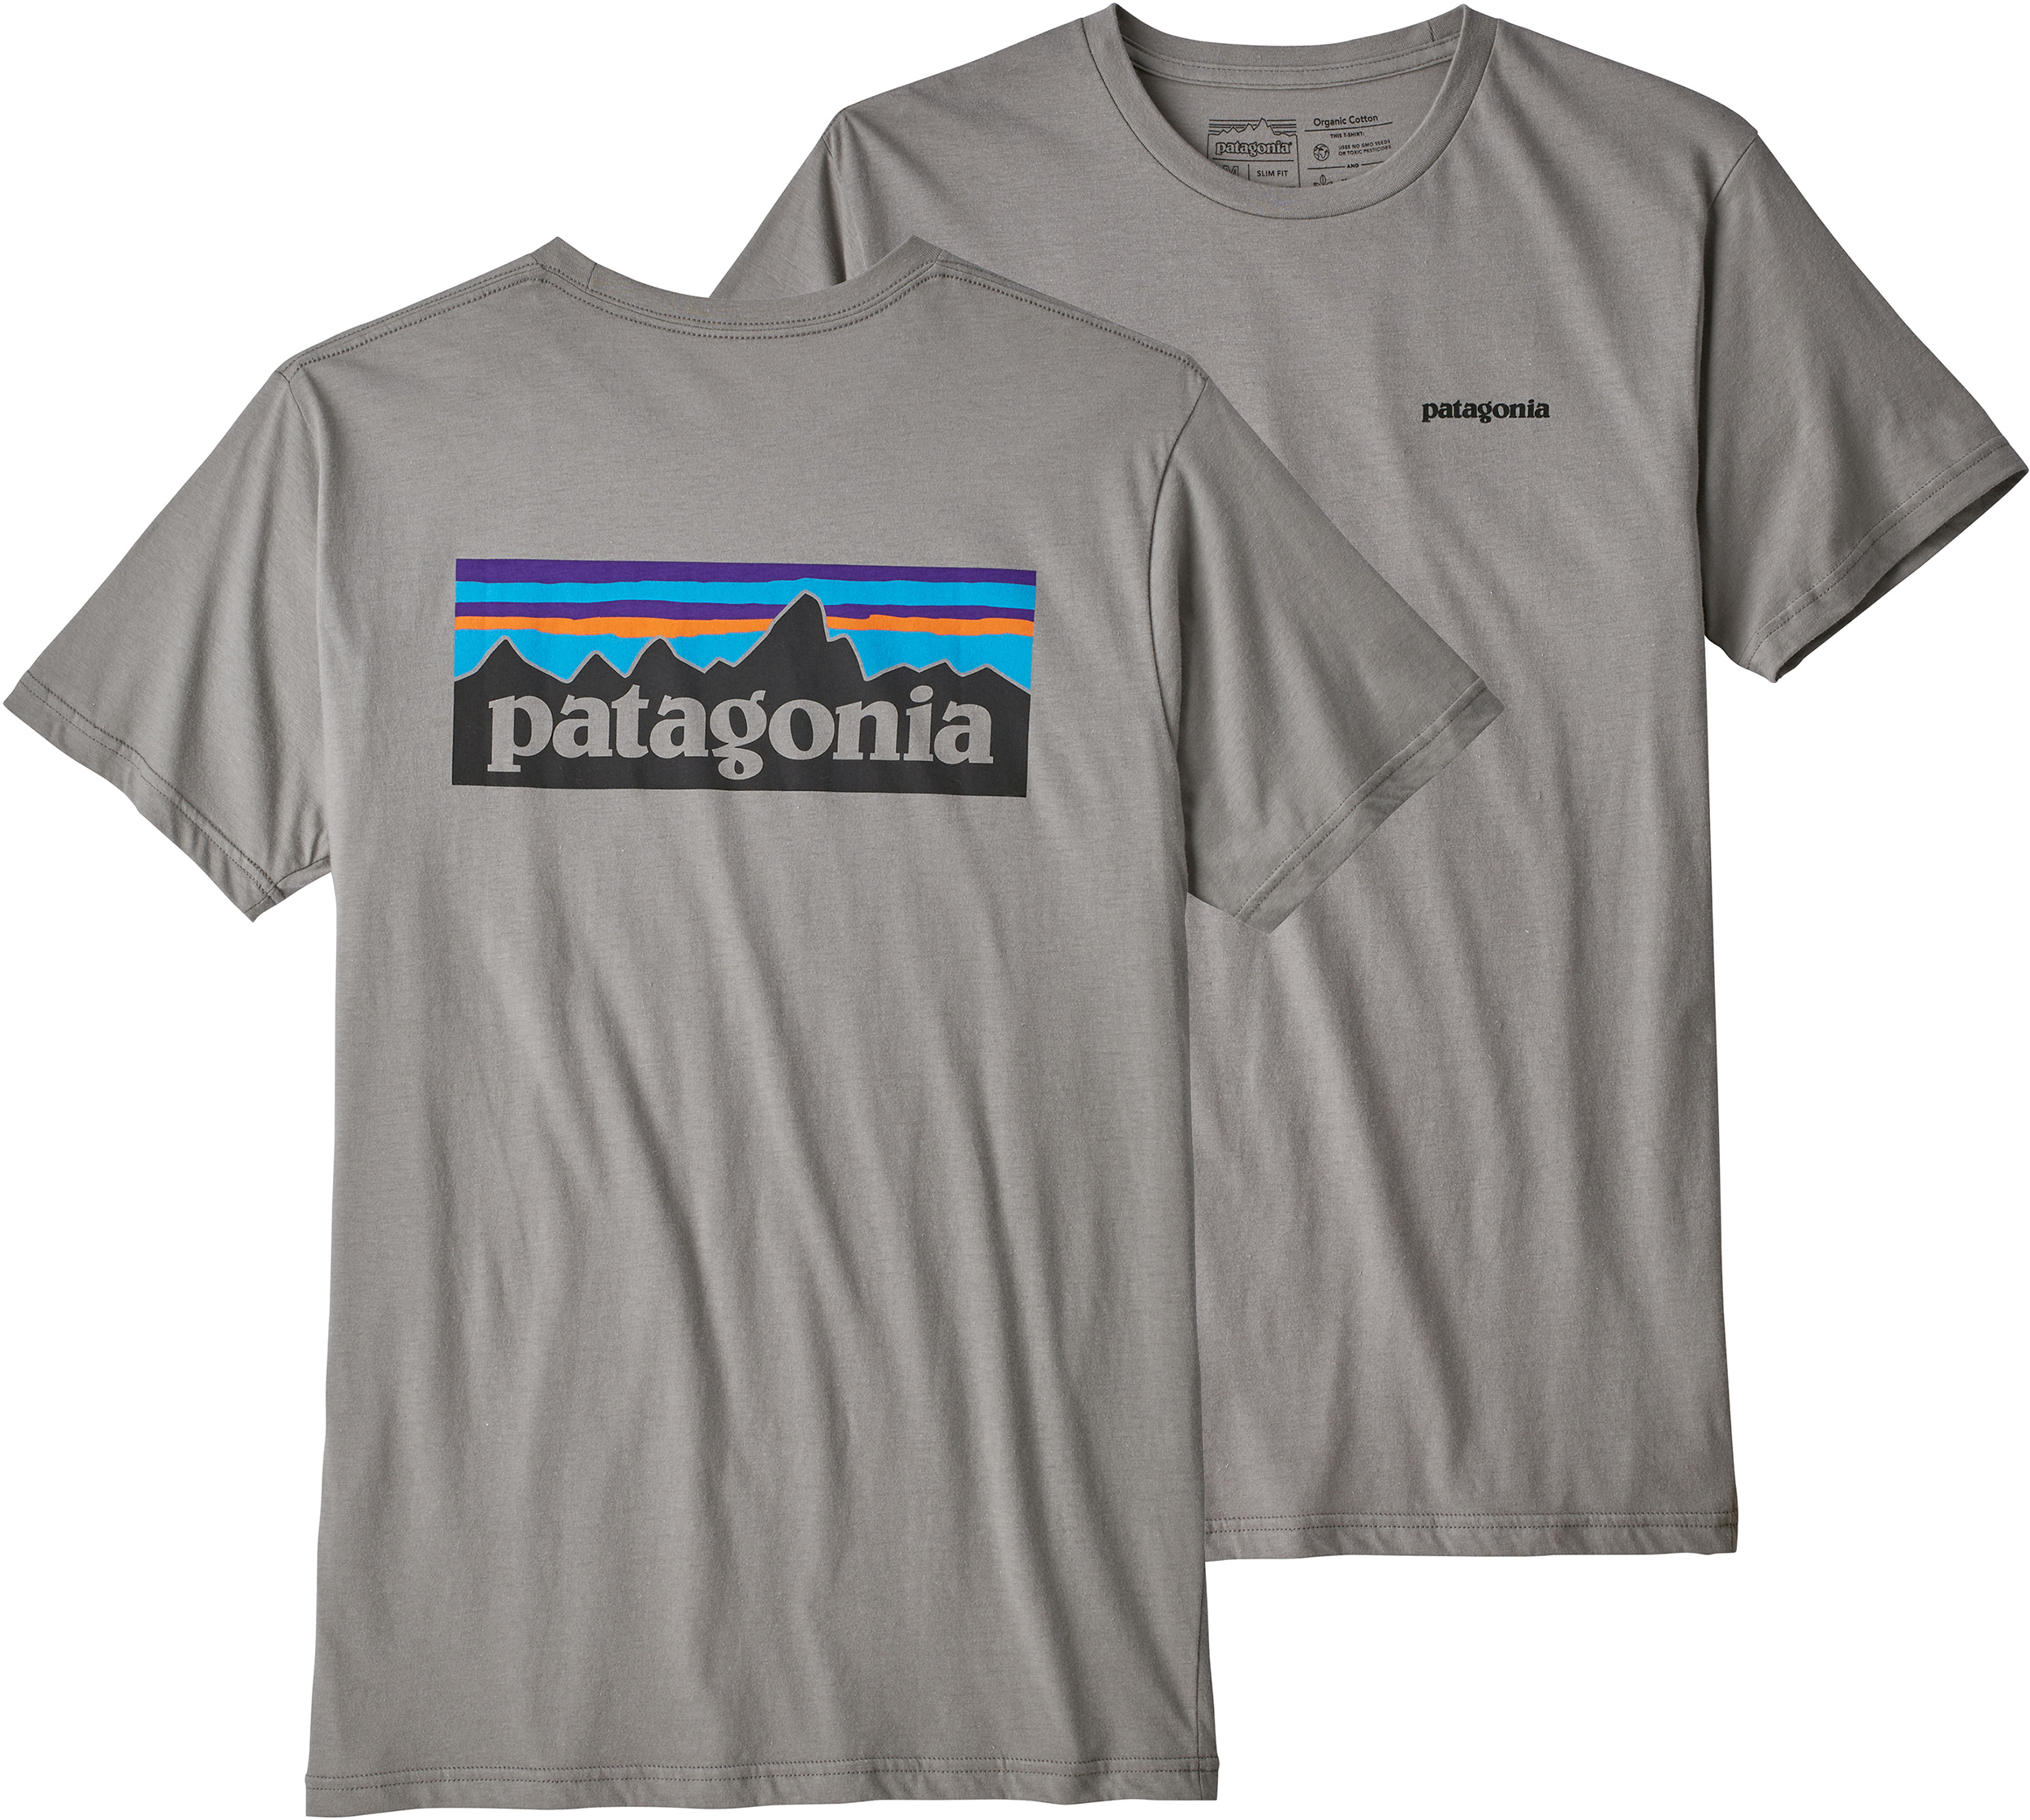 e5e158d4ad2cf Patagonia Shirts and tops